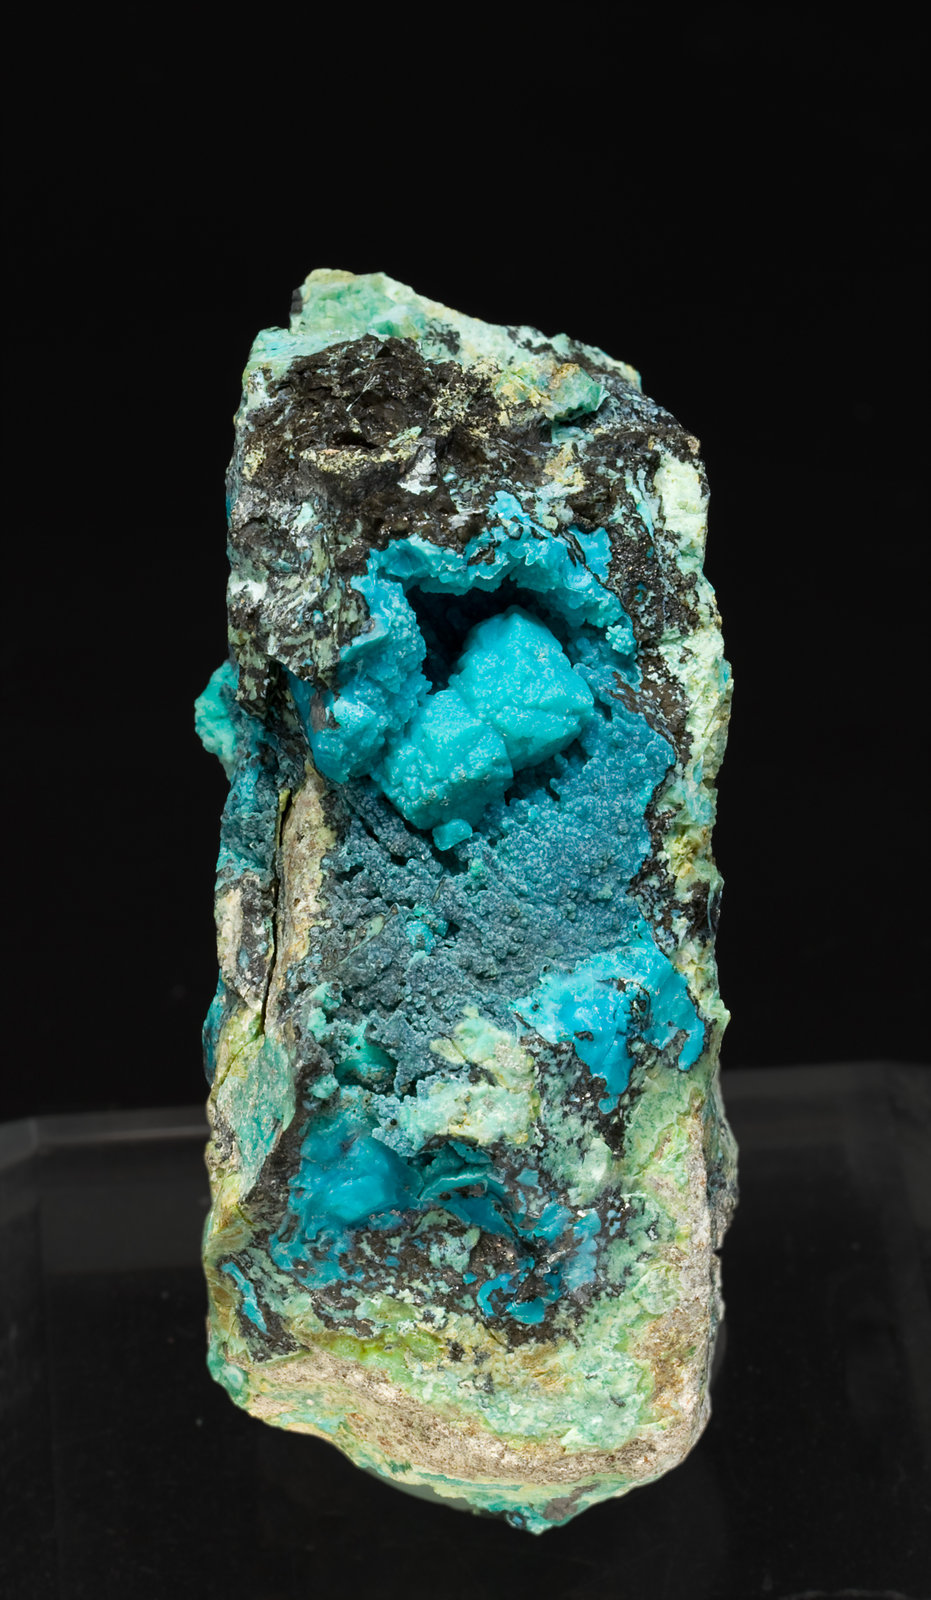 specimens/s_imagesS0/Chrysocolla_after_Boleite-TP27S0f.jpg